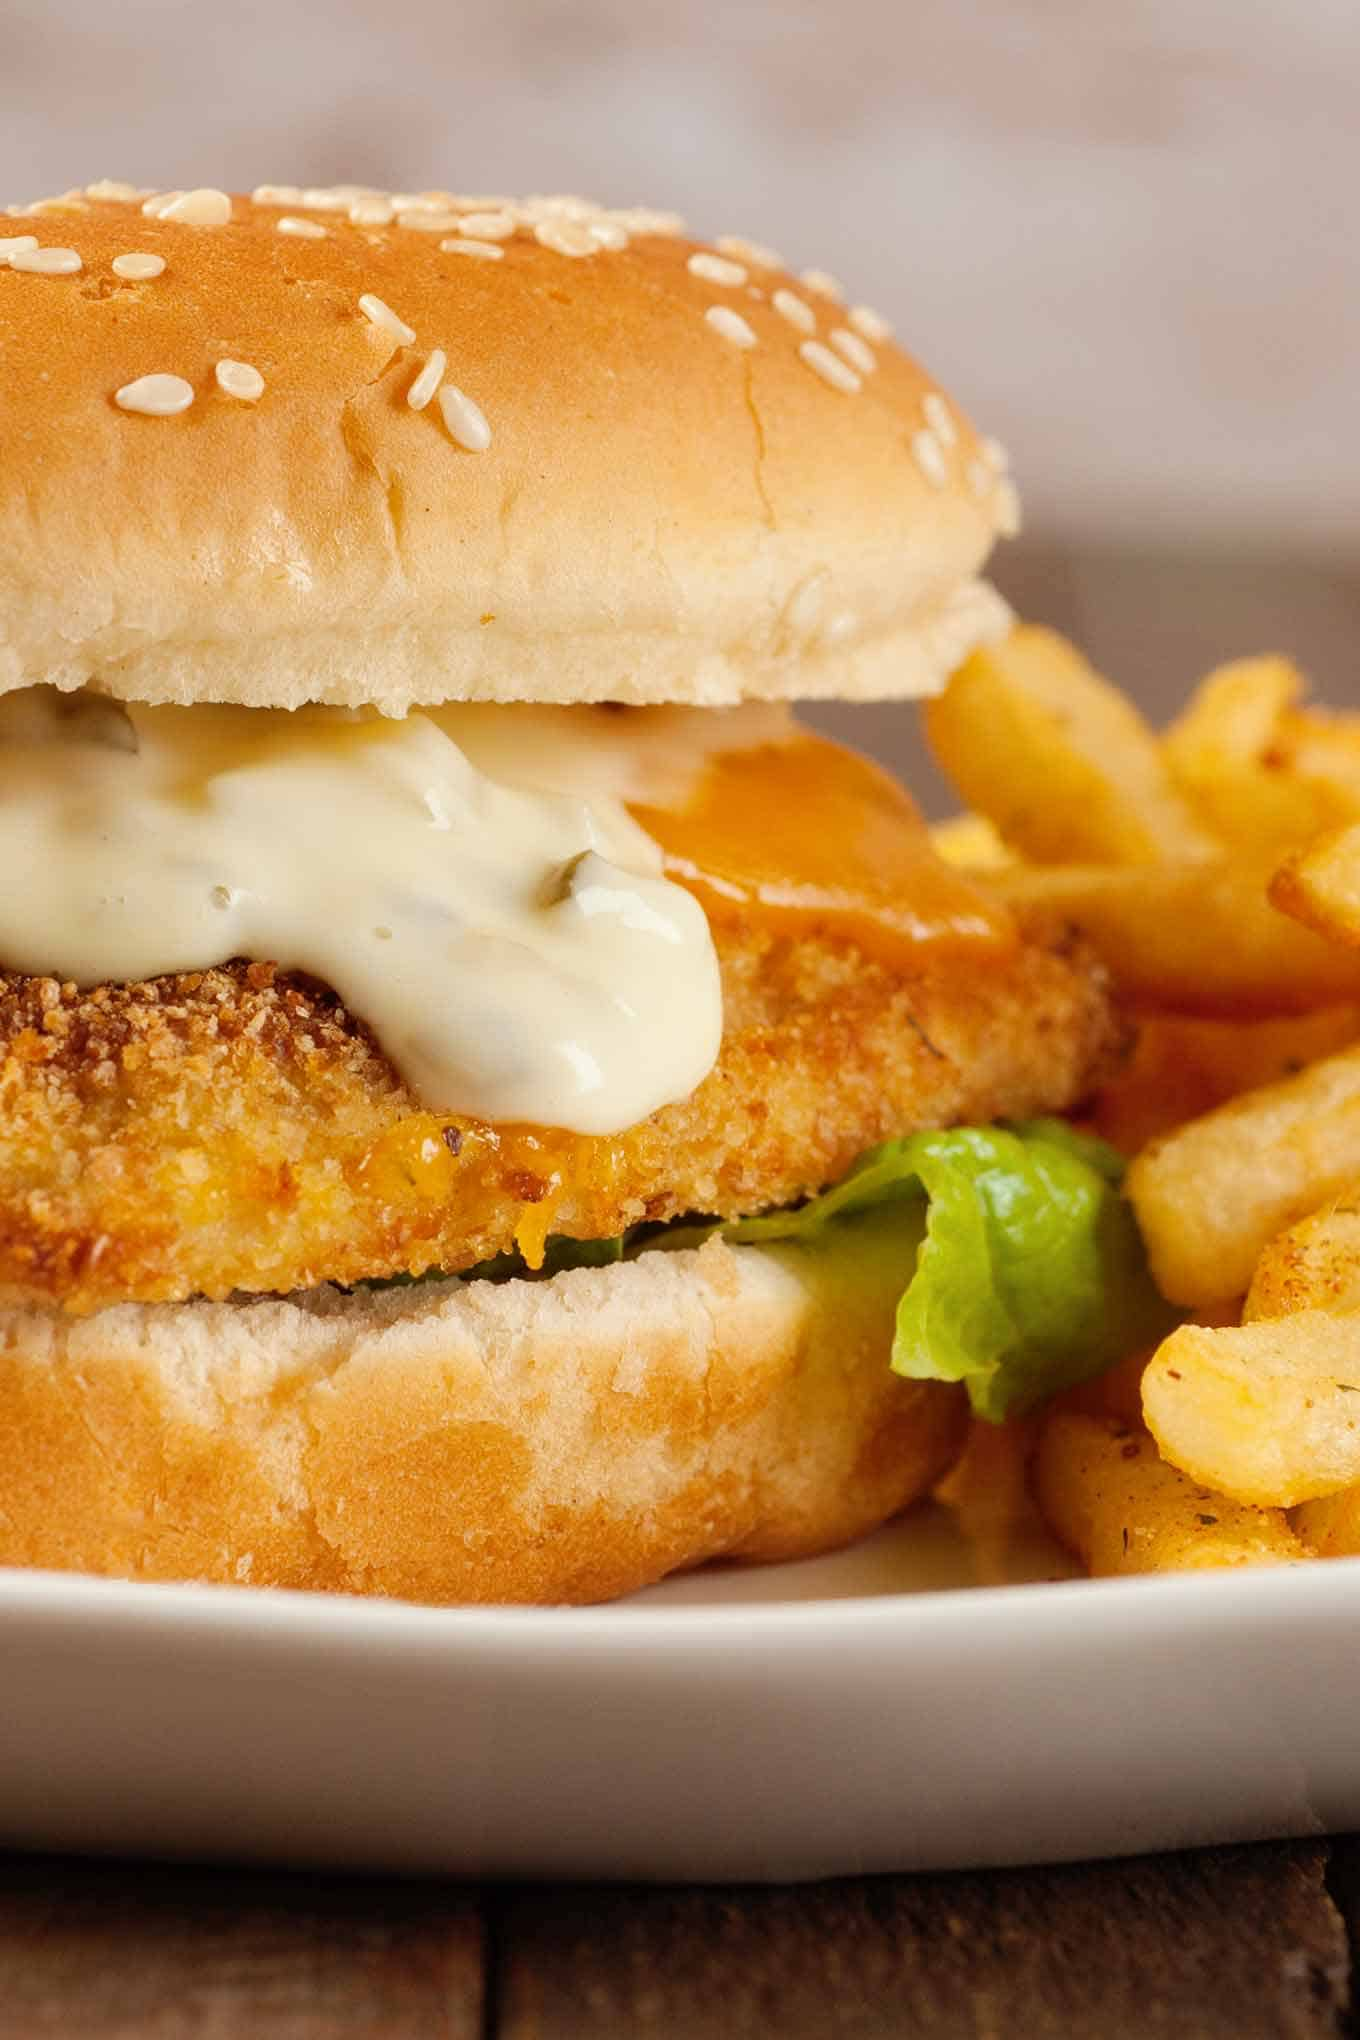 Close-up of oven-fried fish sandwich topped with tartar sauce